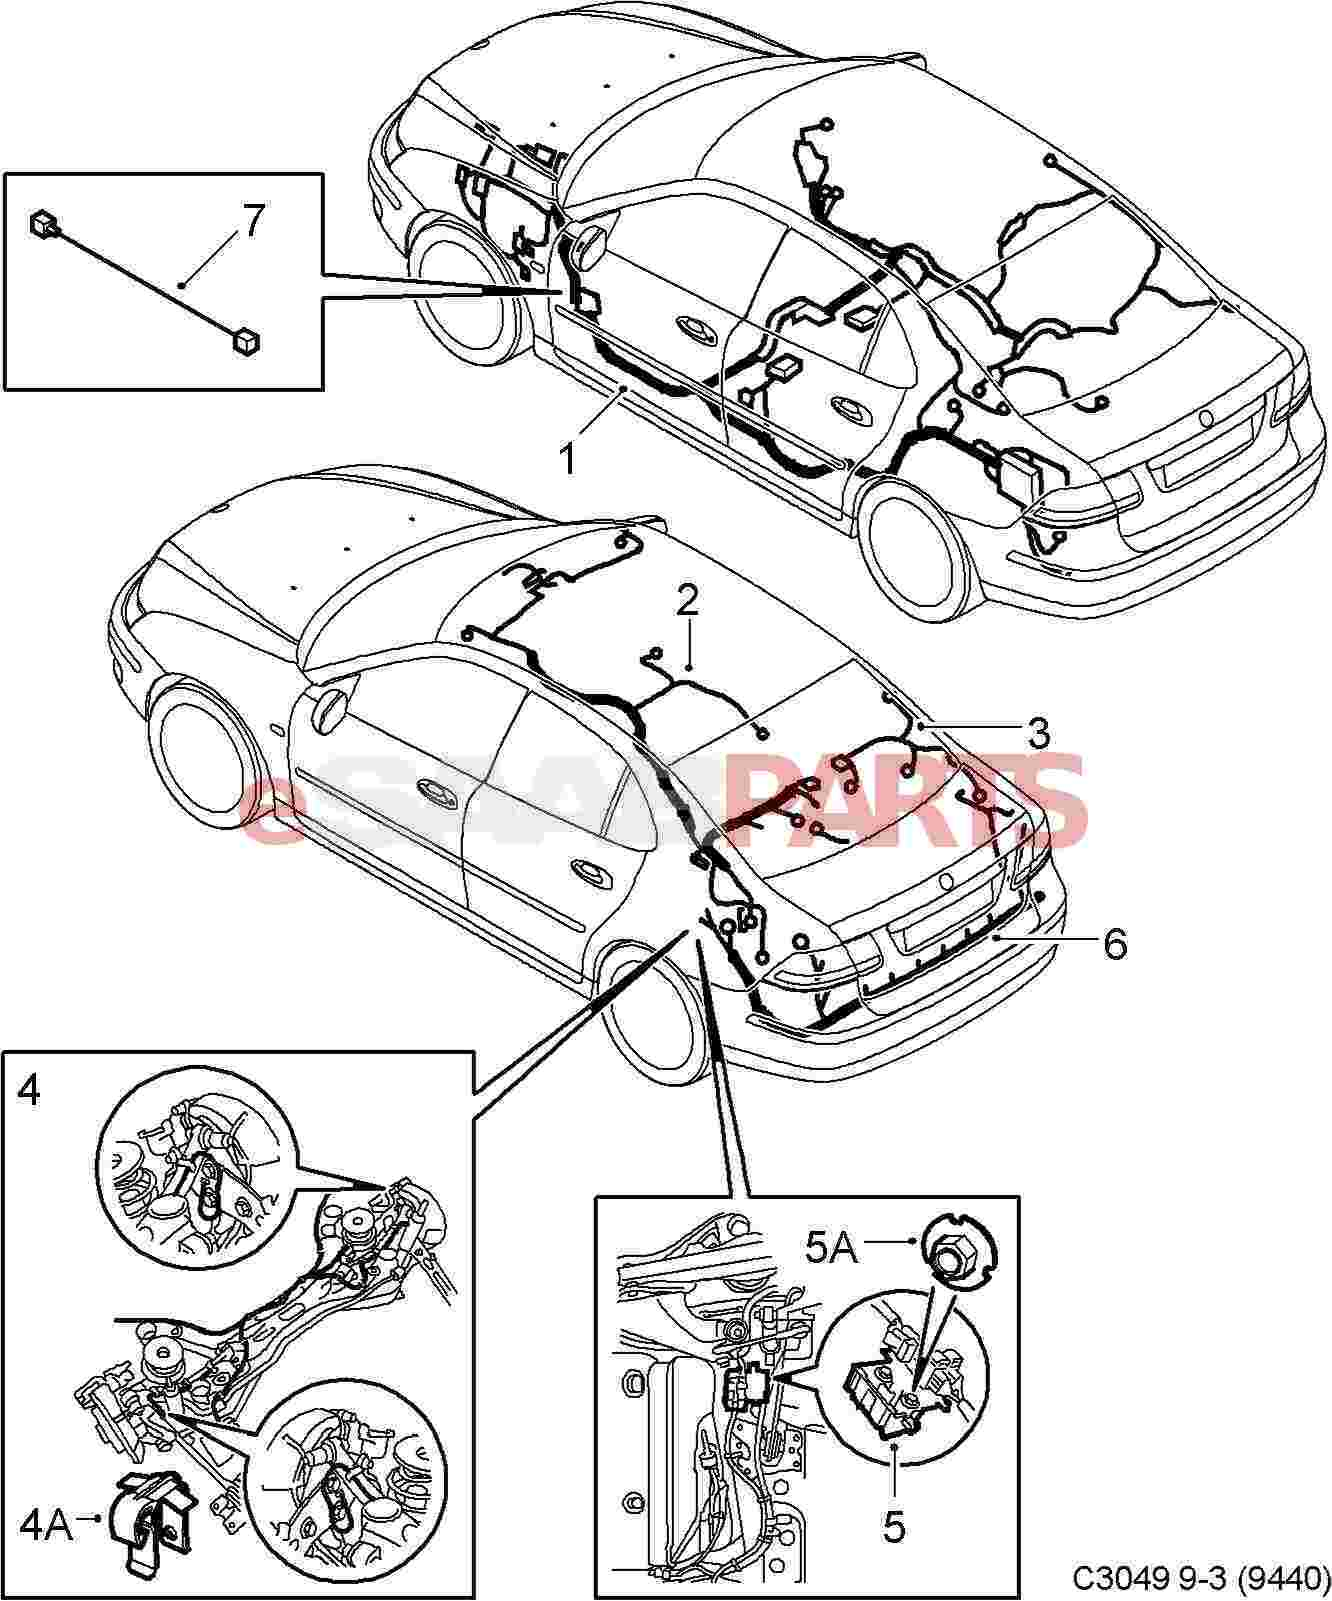 2000 International Dt466e Ecm Wiring. Diagram. Auto Wiring